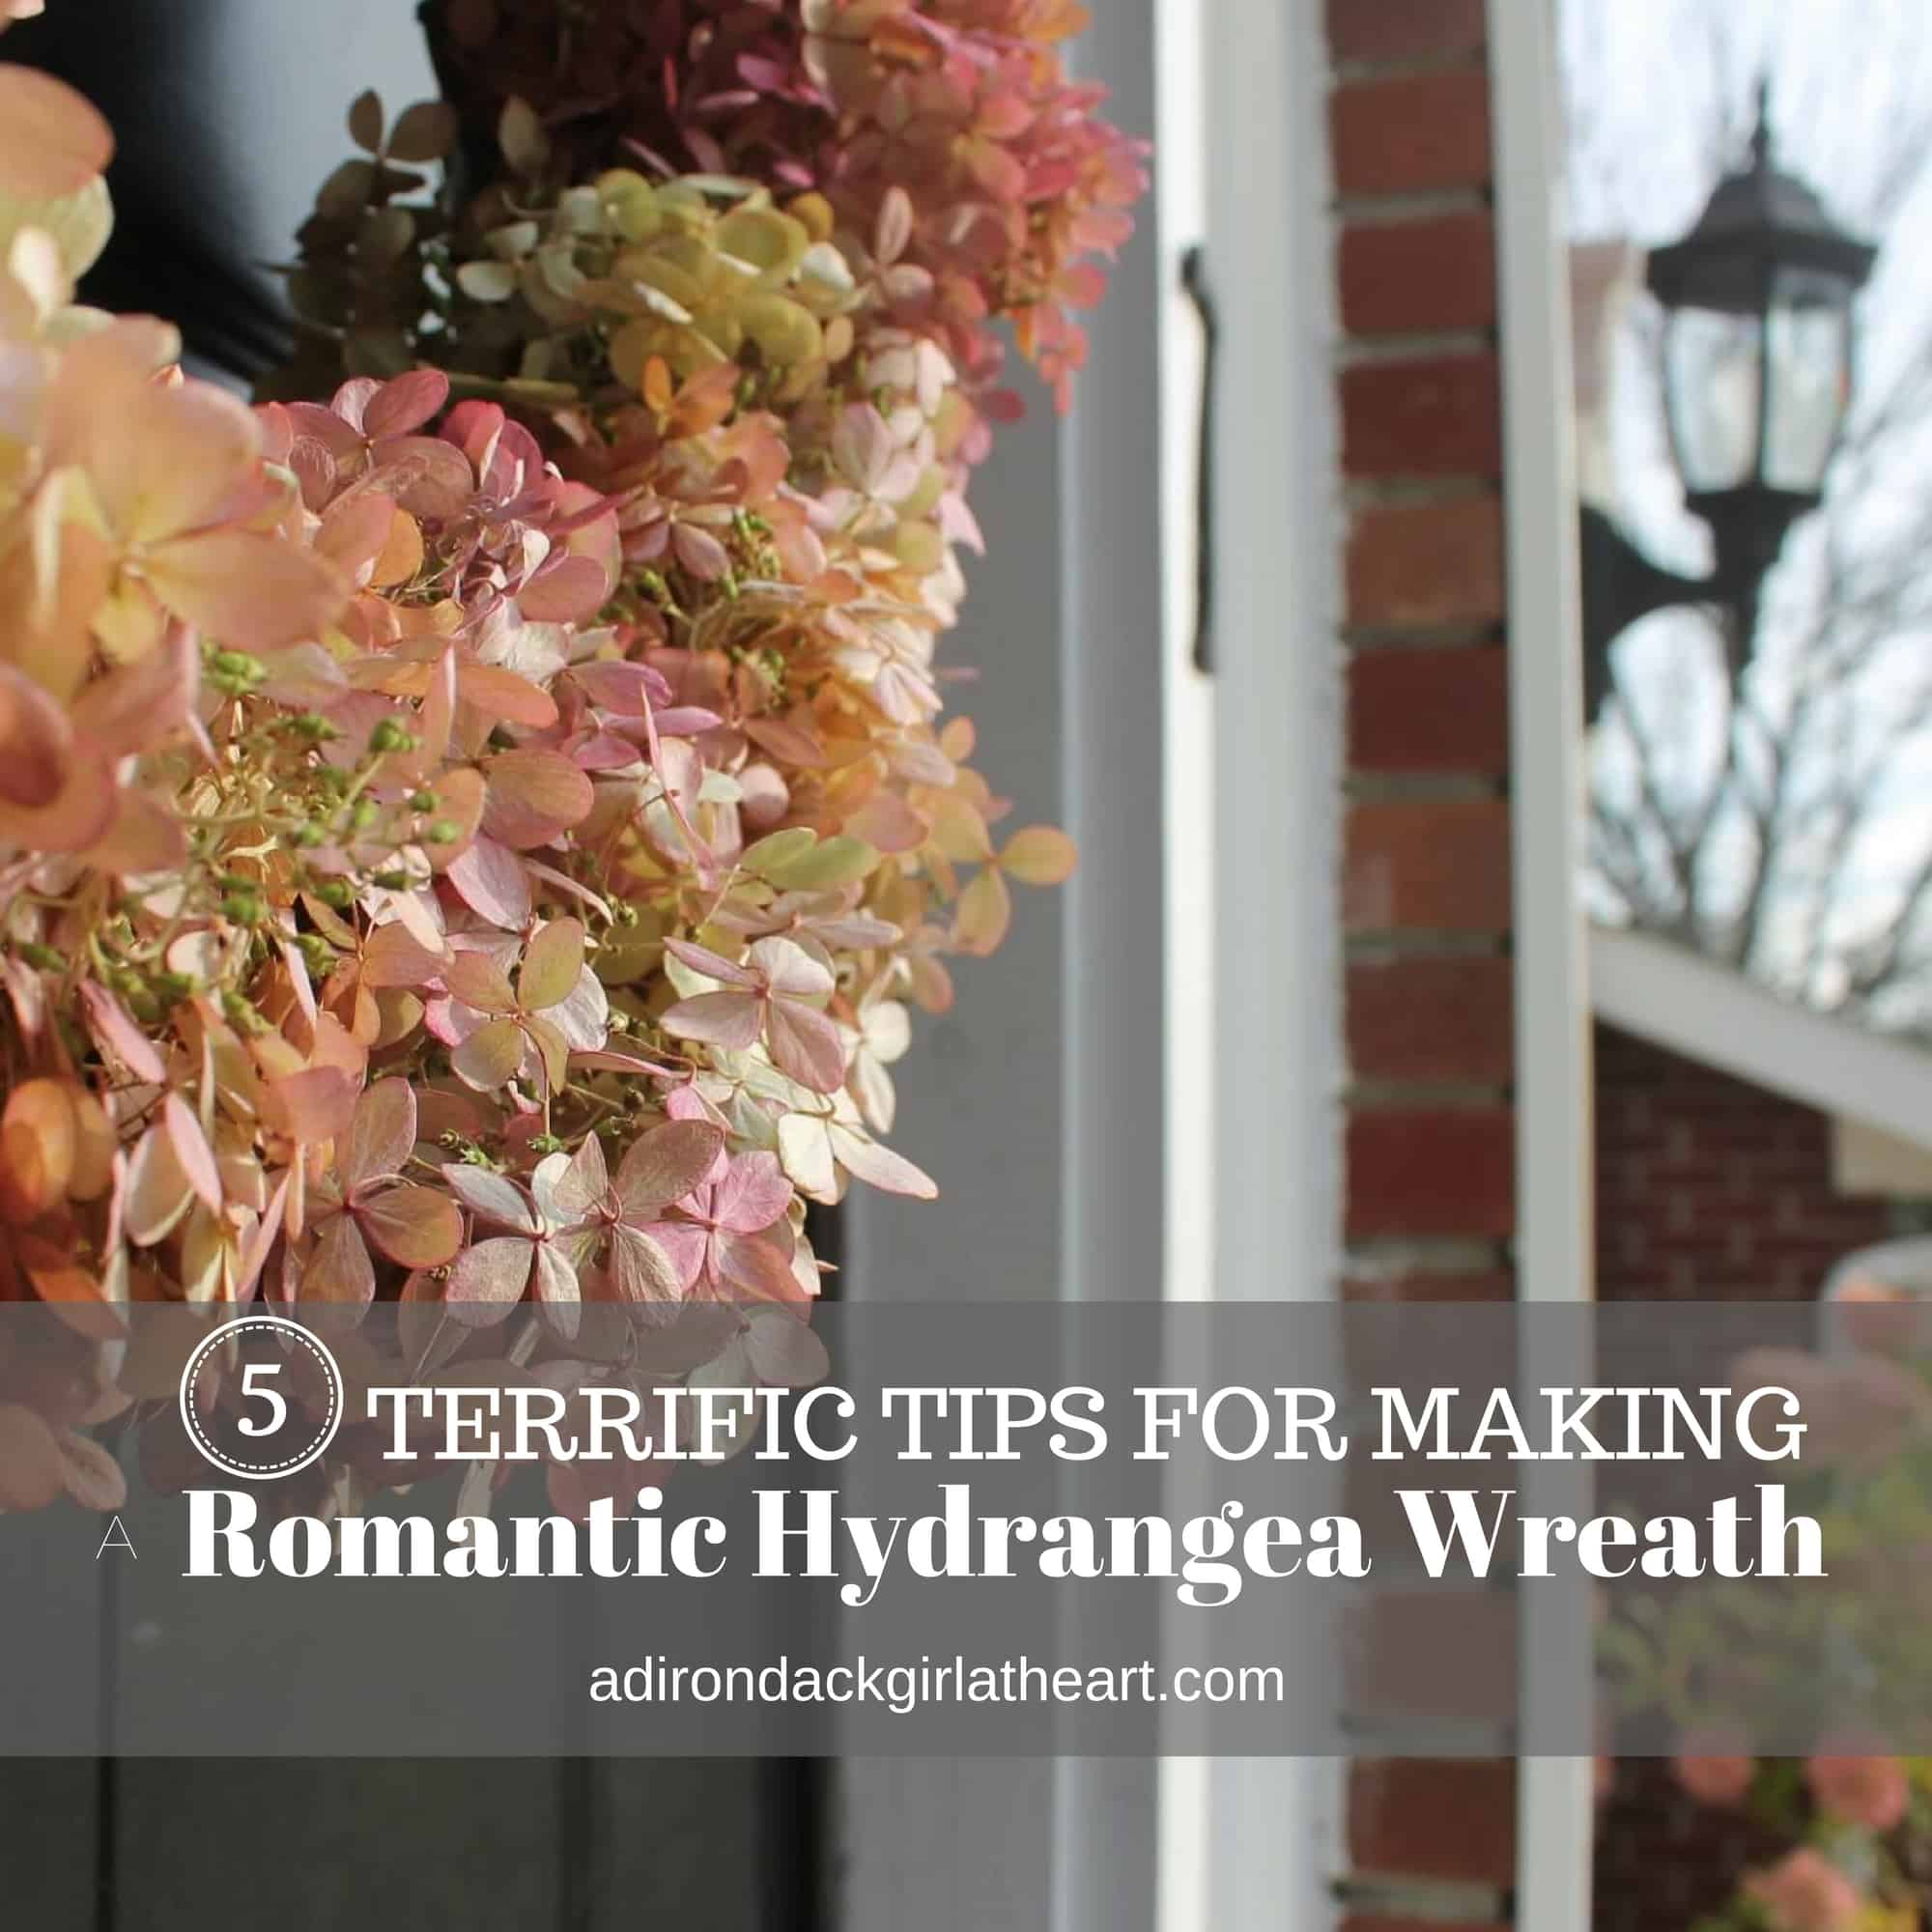 5 Terrific Tips For Making A Romantic Hydrangea Wreath